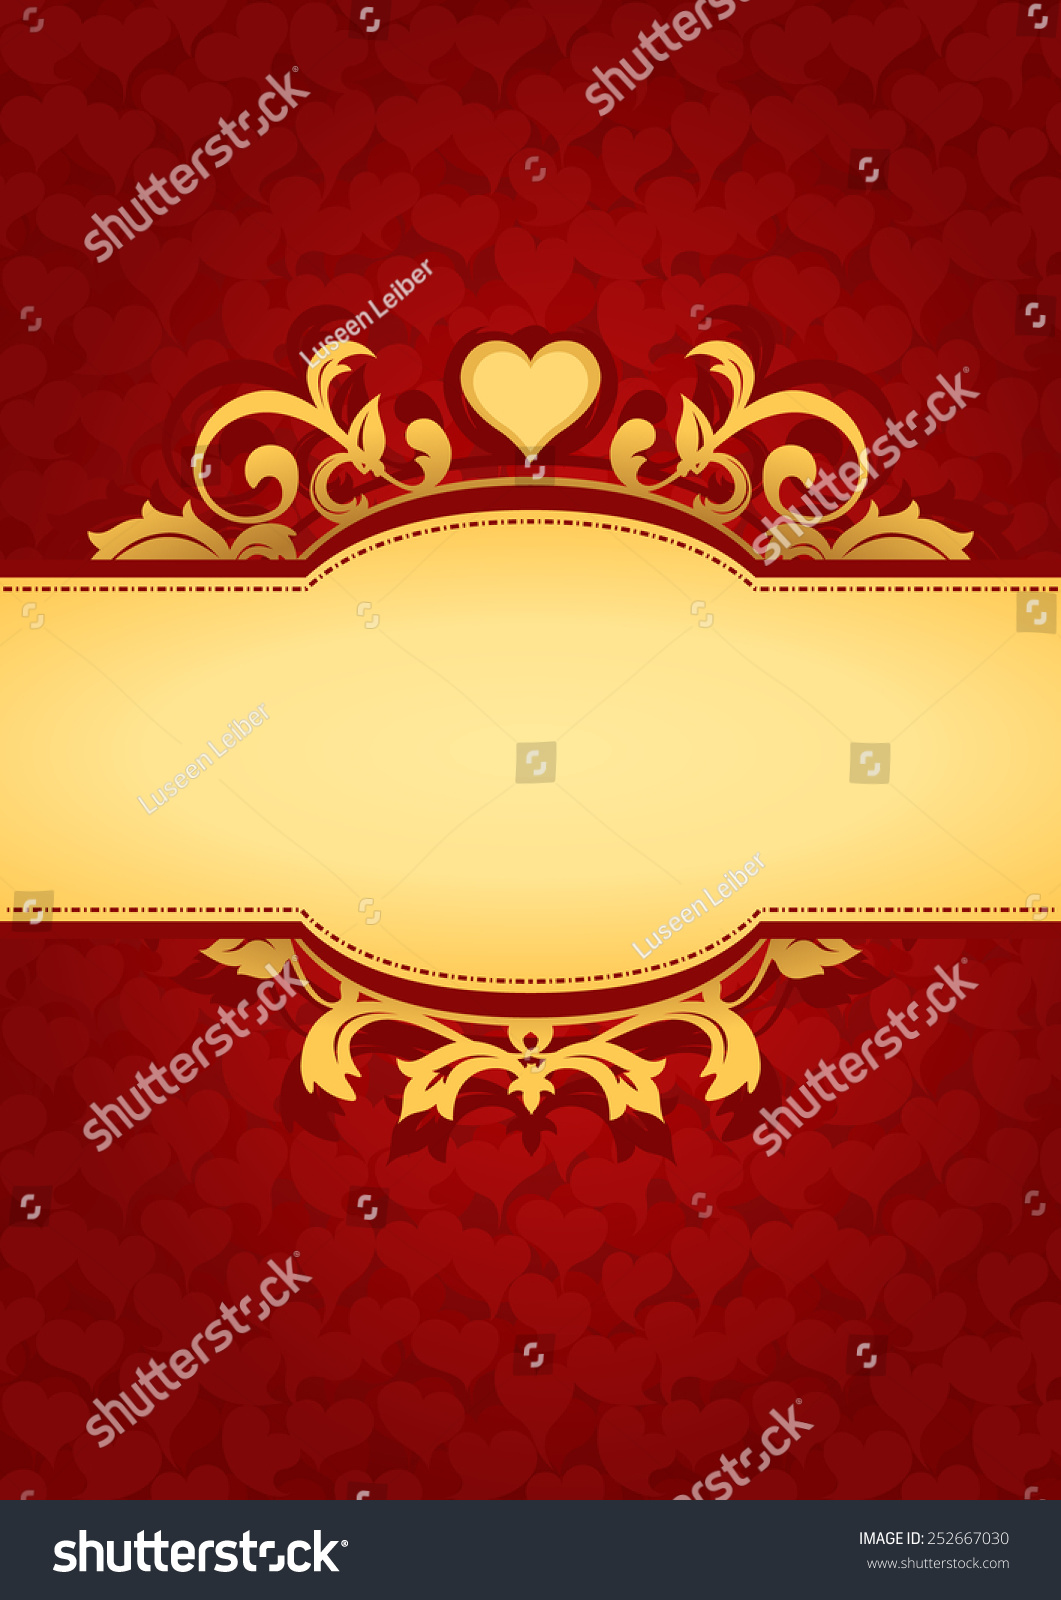 Love Hearts Banner Background Red Valentines Stock Vector Royalty